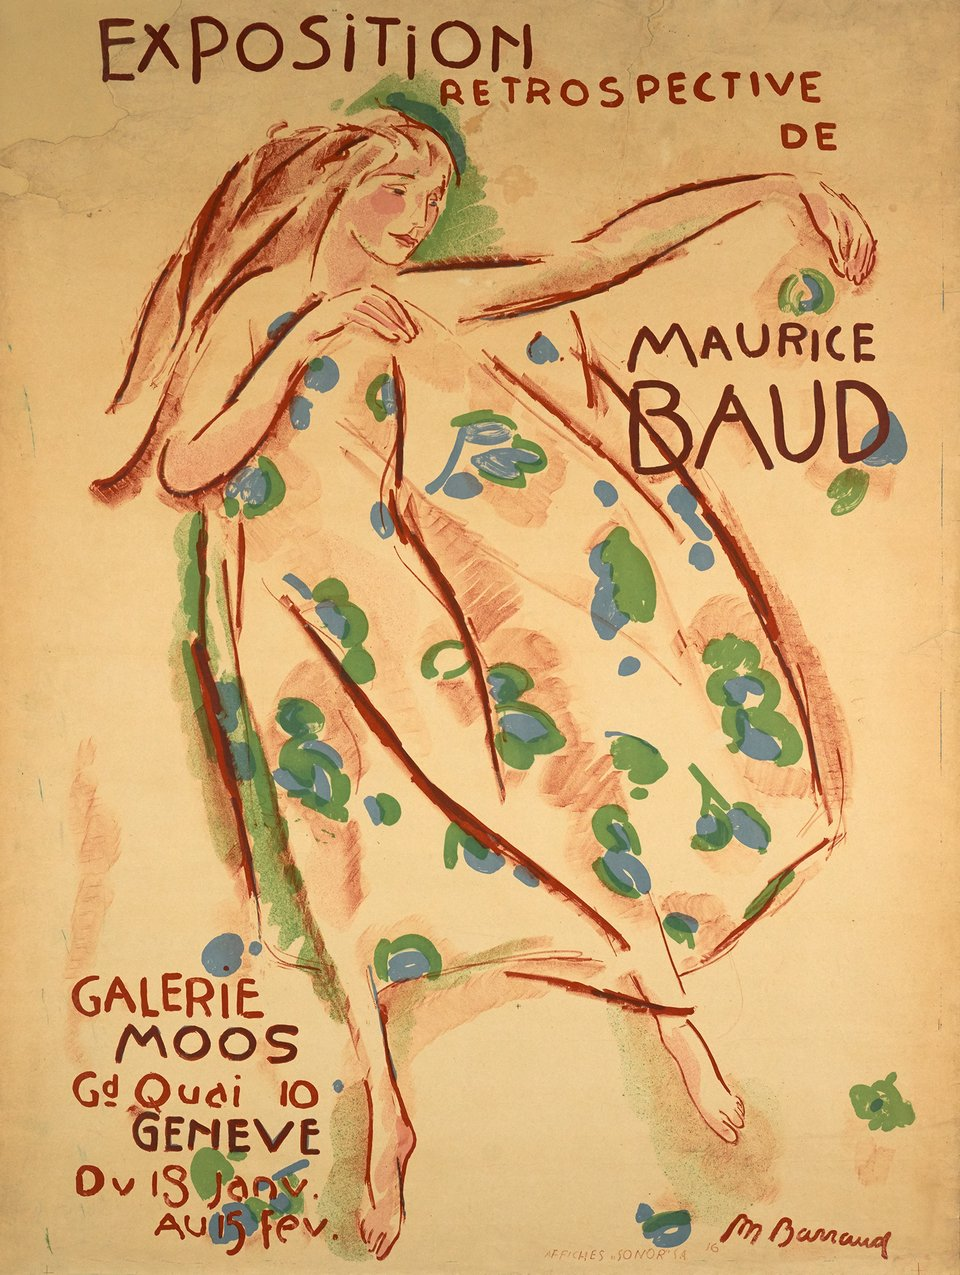 Maurice Baud, Galerie Moos – Affiche ancienne – Maurice BARRAUD – 1916